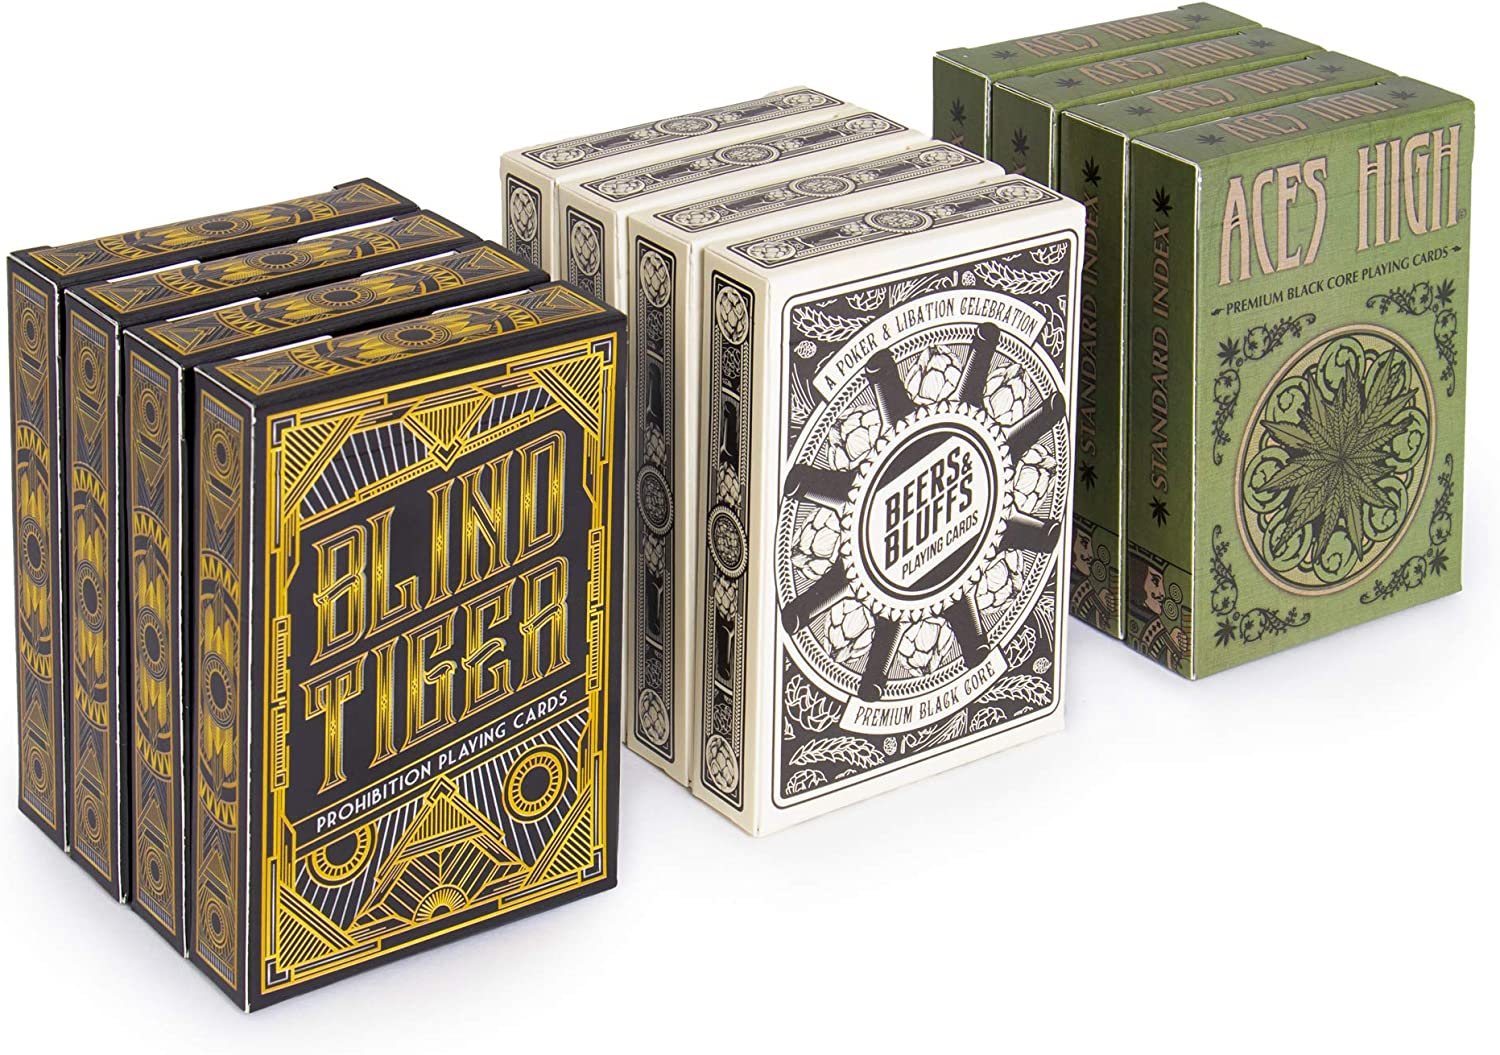 12 Decks Blind Tiger, Beers & Bluffs, and Aces High Card Decks (4/4/4 Split) | 310gsm Black Core Cardstock, Plastic-coated, Standard Index Poker Size | Casino-style Custom Card Gaming and Gift Decks